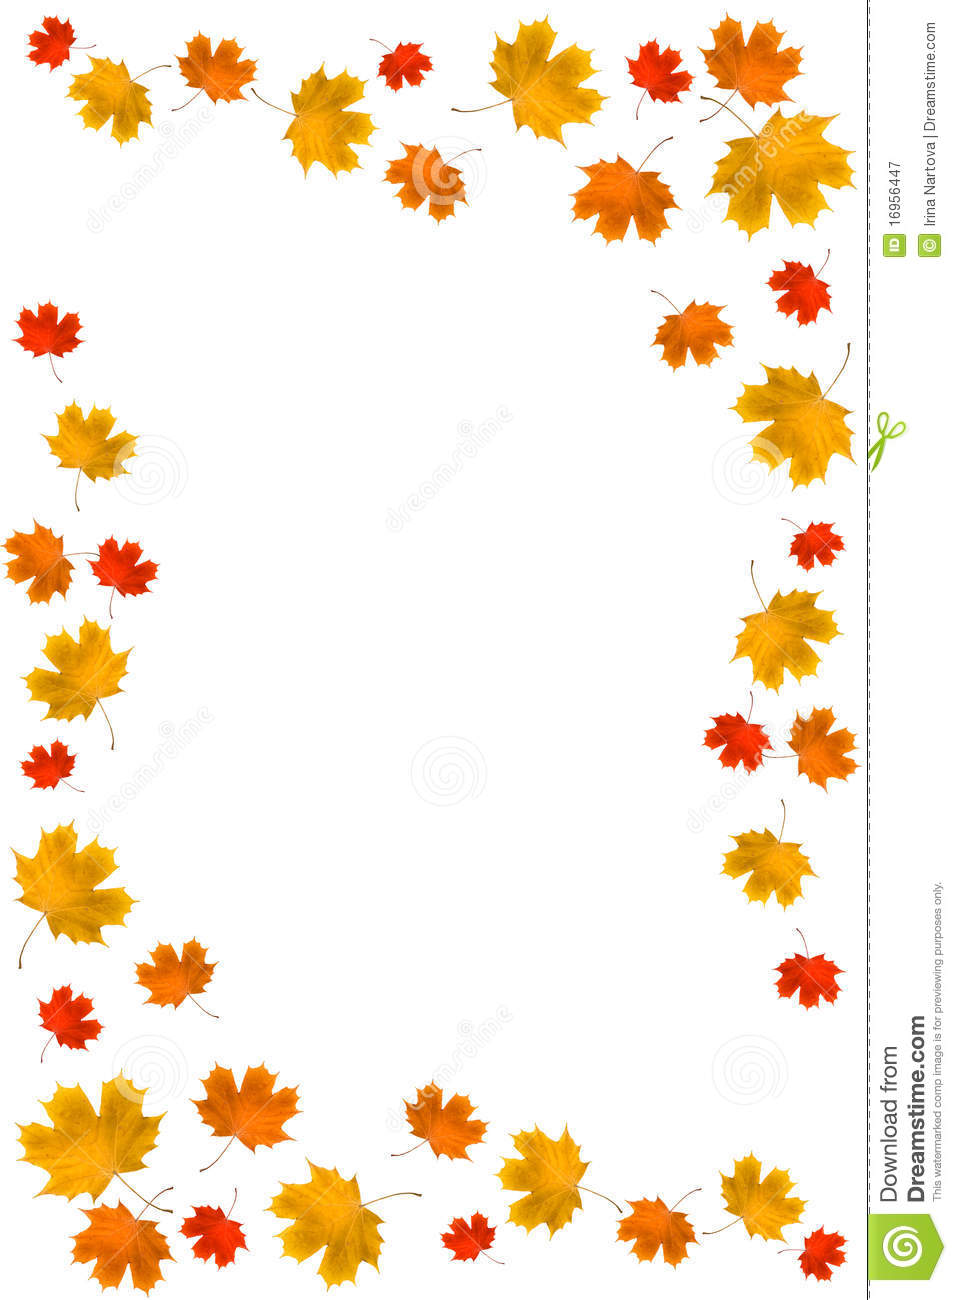 frame from autumn leaves stock image image of